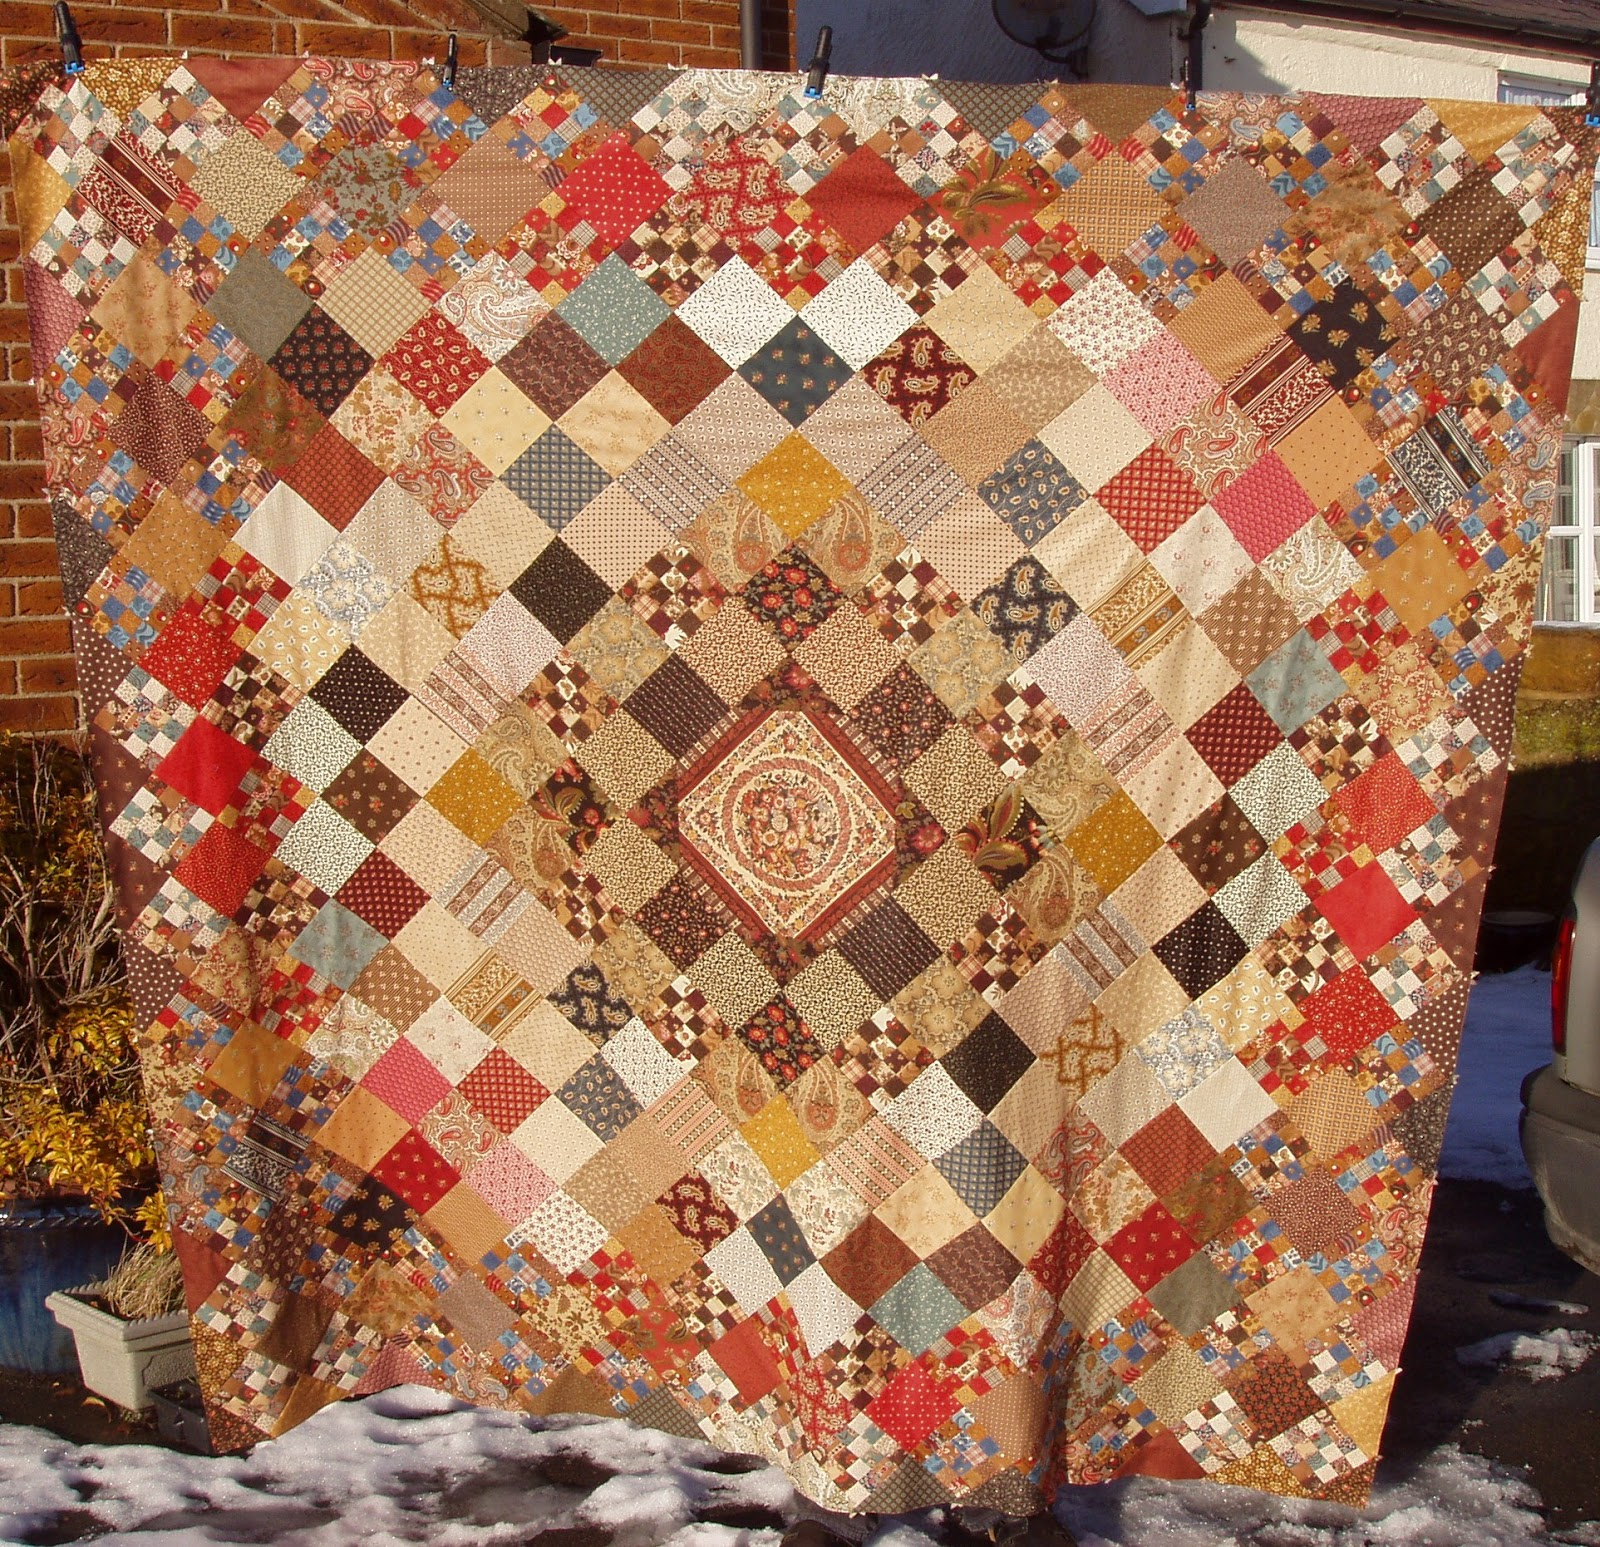 sashiko and other stitching: Antique quilt inspirations and two ... : antique patchwork quilts - Adamdwight.com